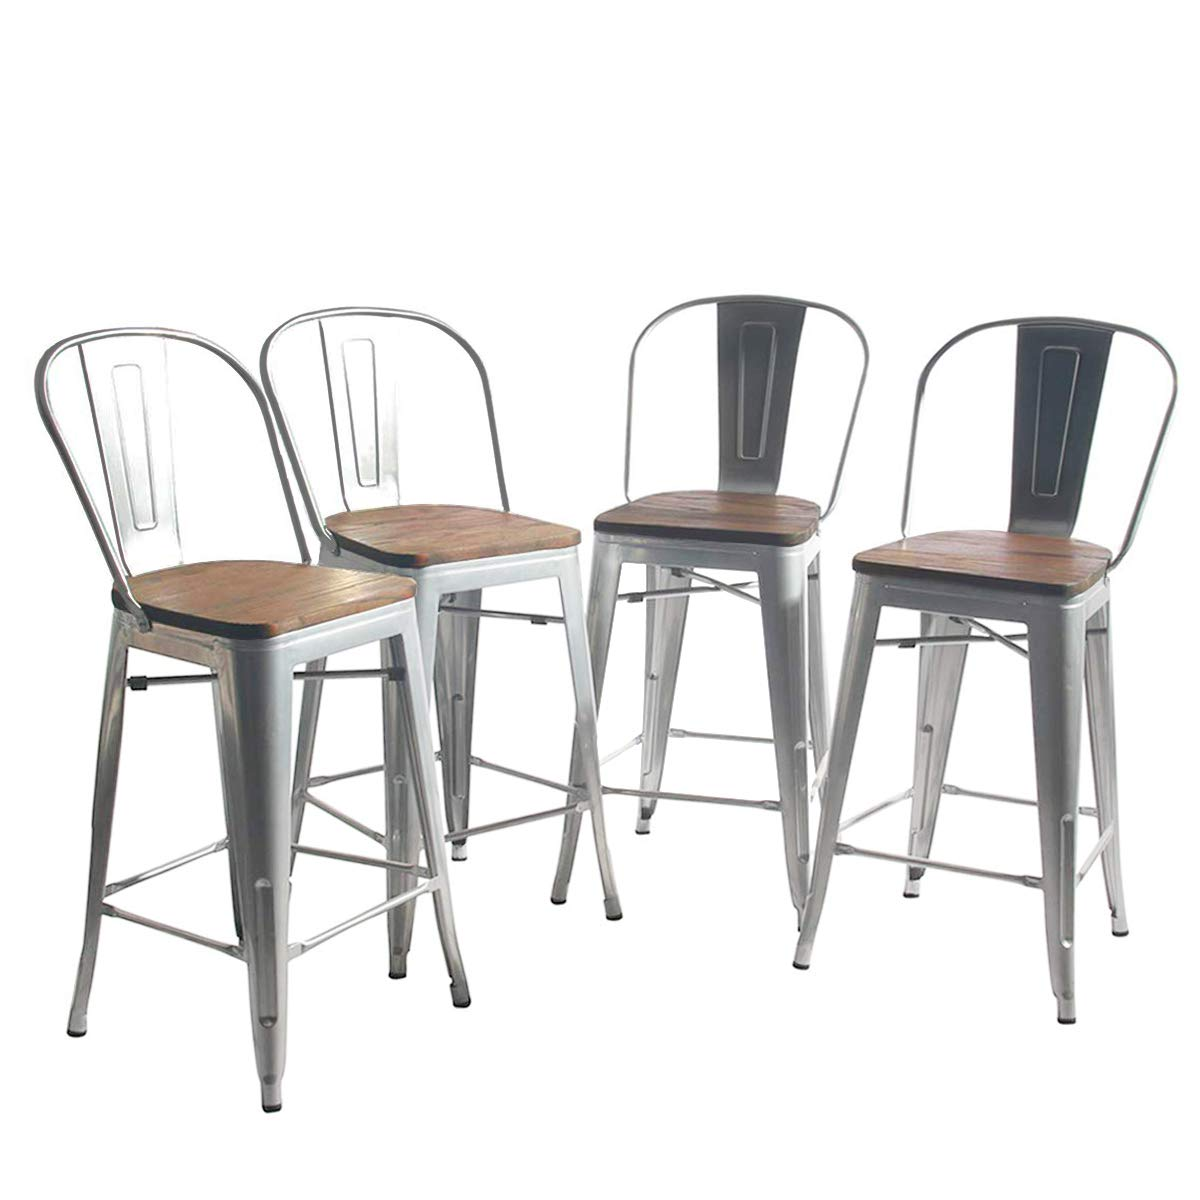 YongQiang Metal Barstools Set of 4 Indoor Outdoor Bar Stools High Back Dining Chair Counter Stool Cafe Side Chairs with Wooden Seat 26'' Silver by YongQiang